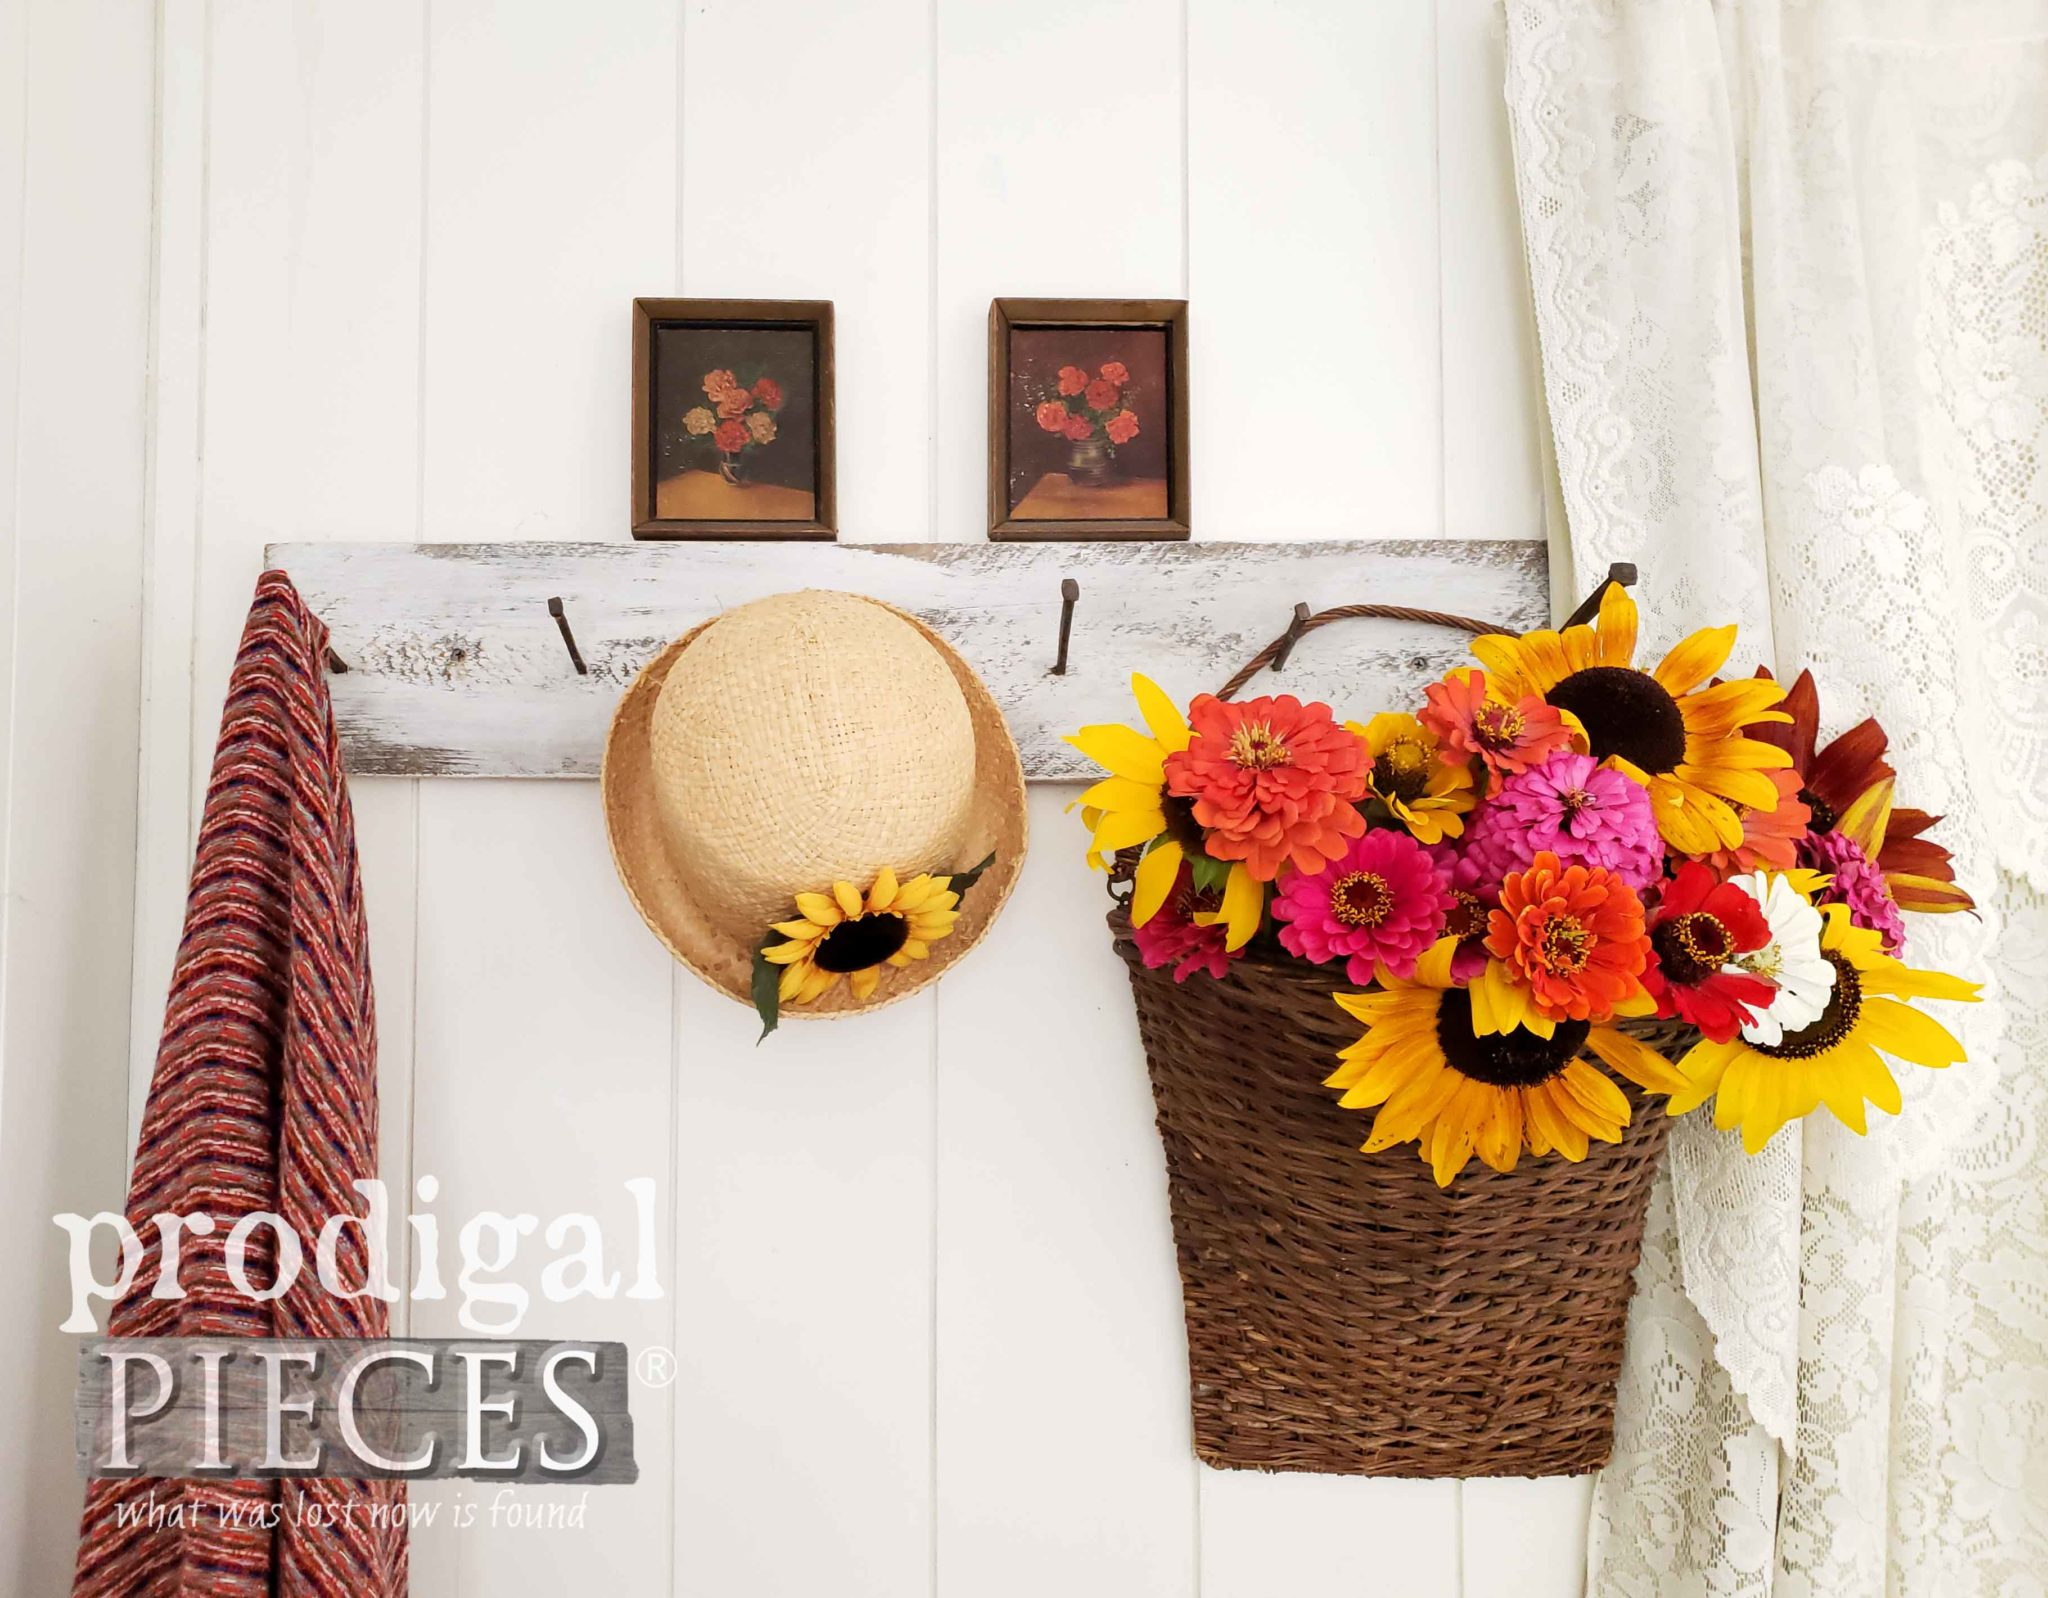 Floral Vignette with Sunflowers and Zinnias by Prodigal Pieces | prodigalpieces.com